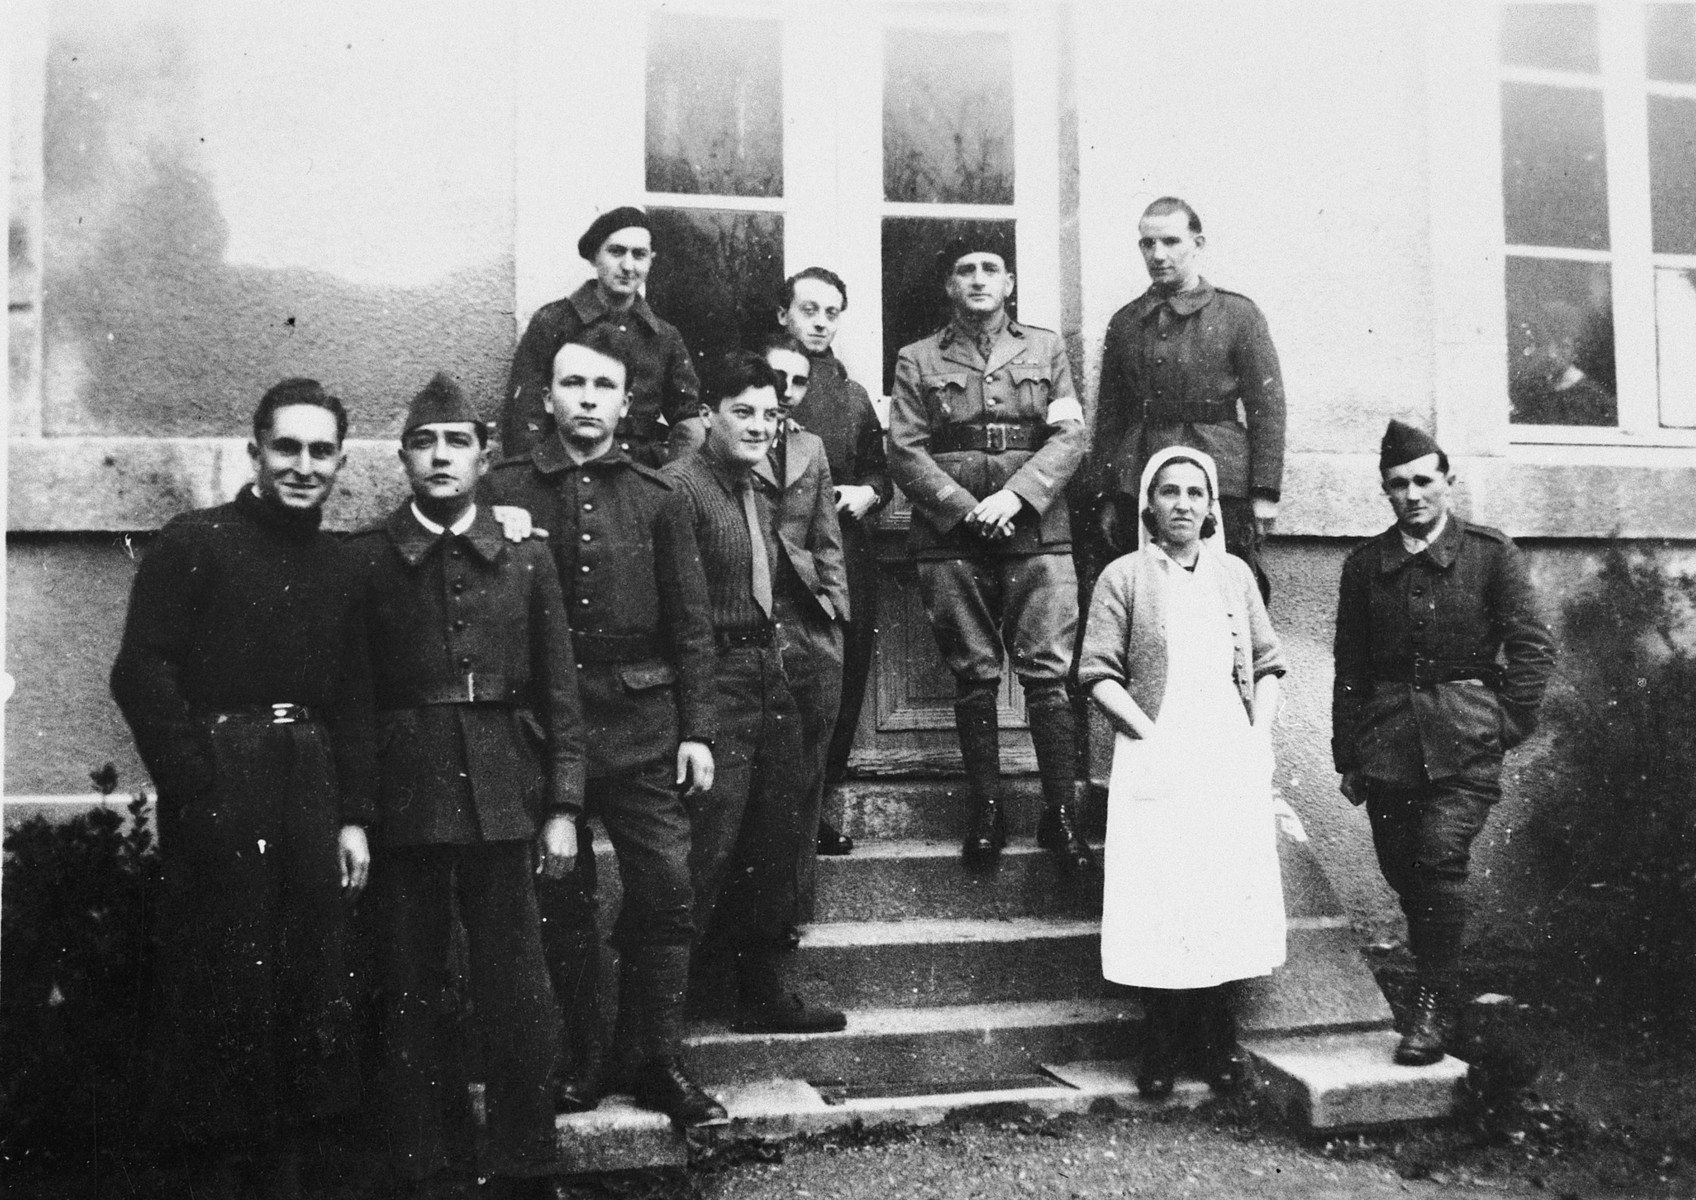 Staff of the French army hospital in Gueret.  Among those pictured is Dr. Robert Schwab.